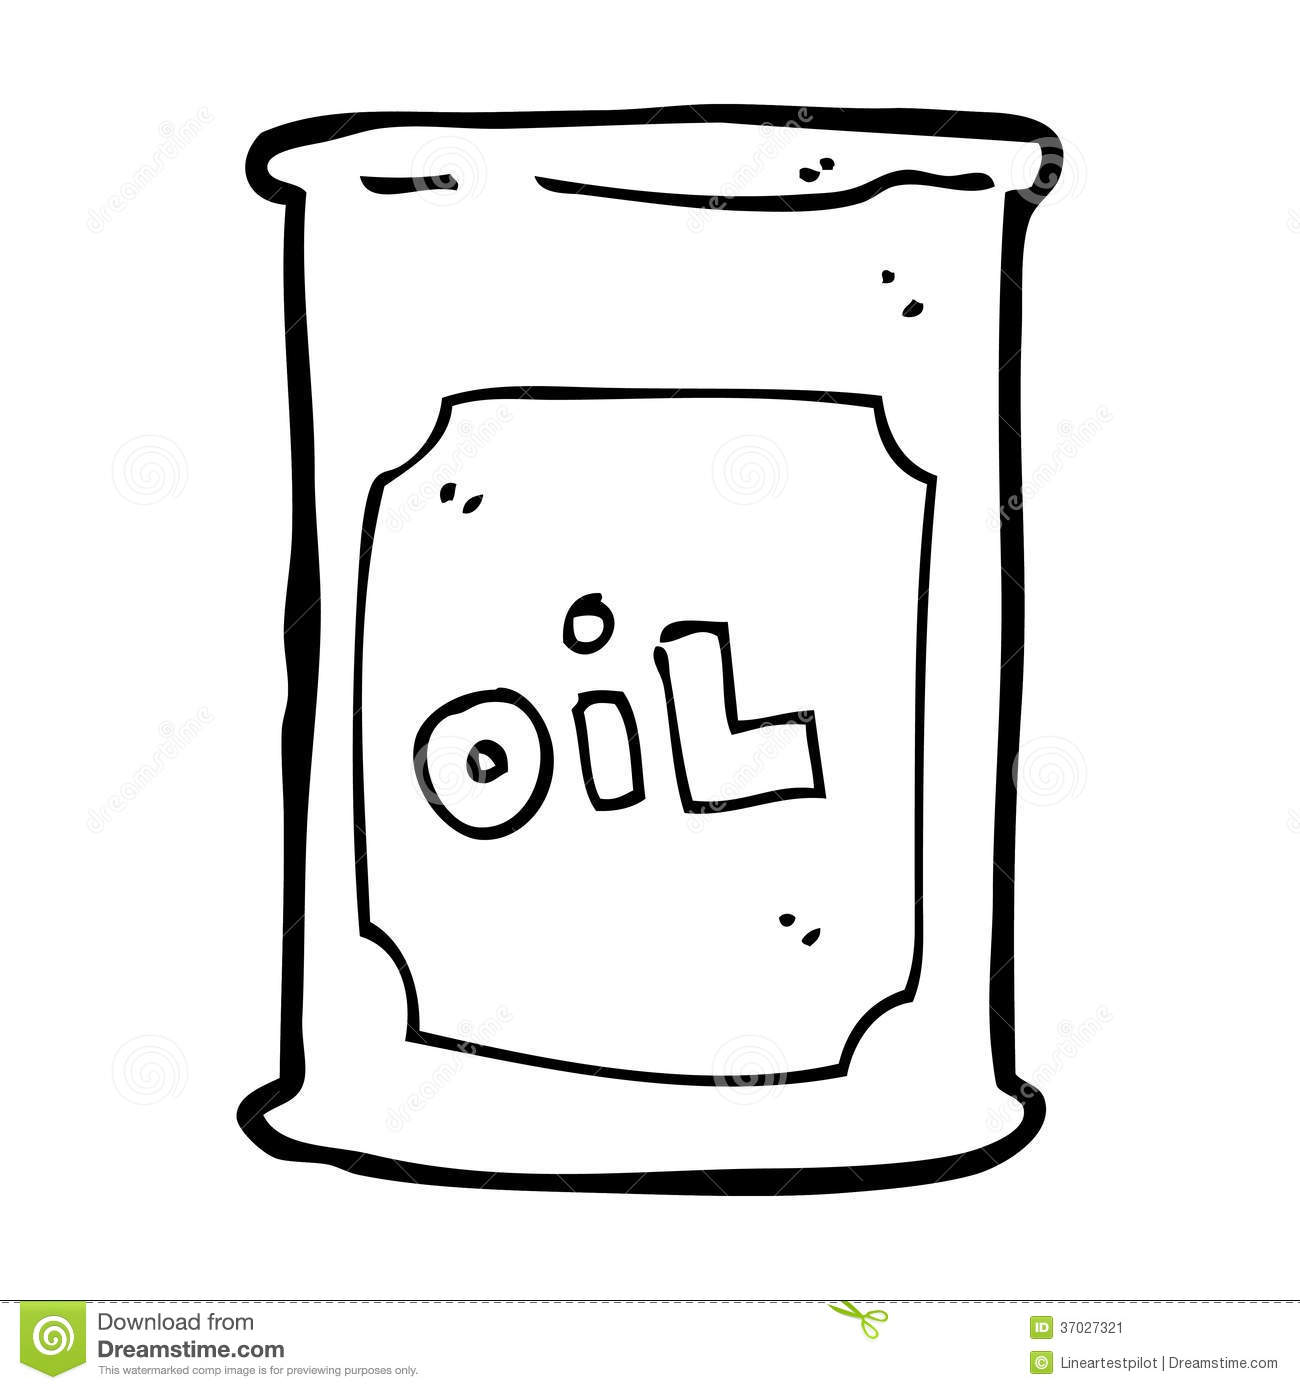 Oil clipart black and white 3 » Clipart Station.